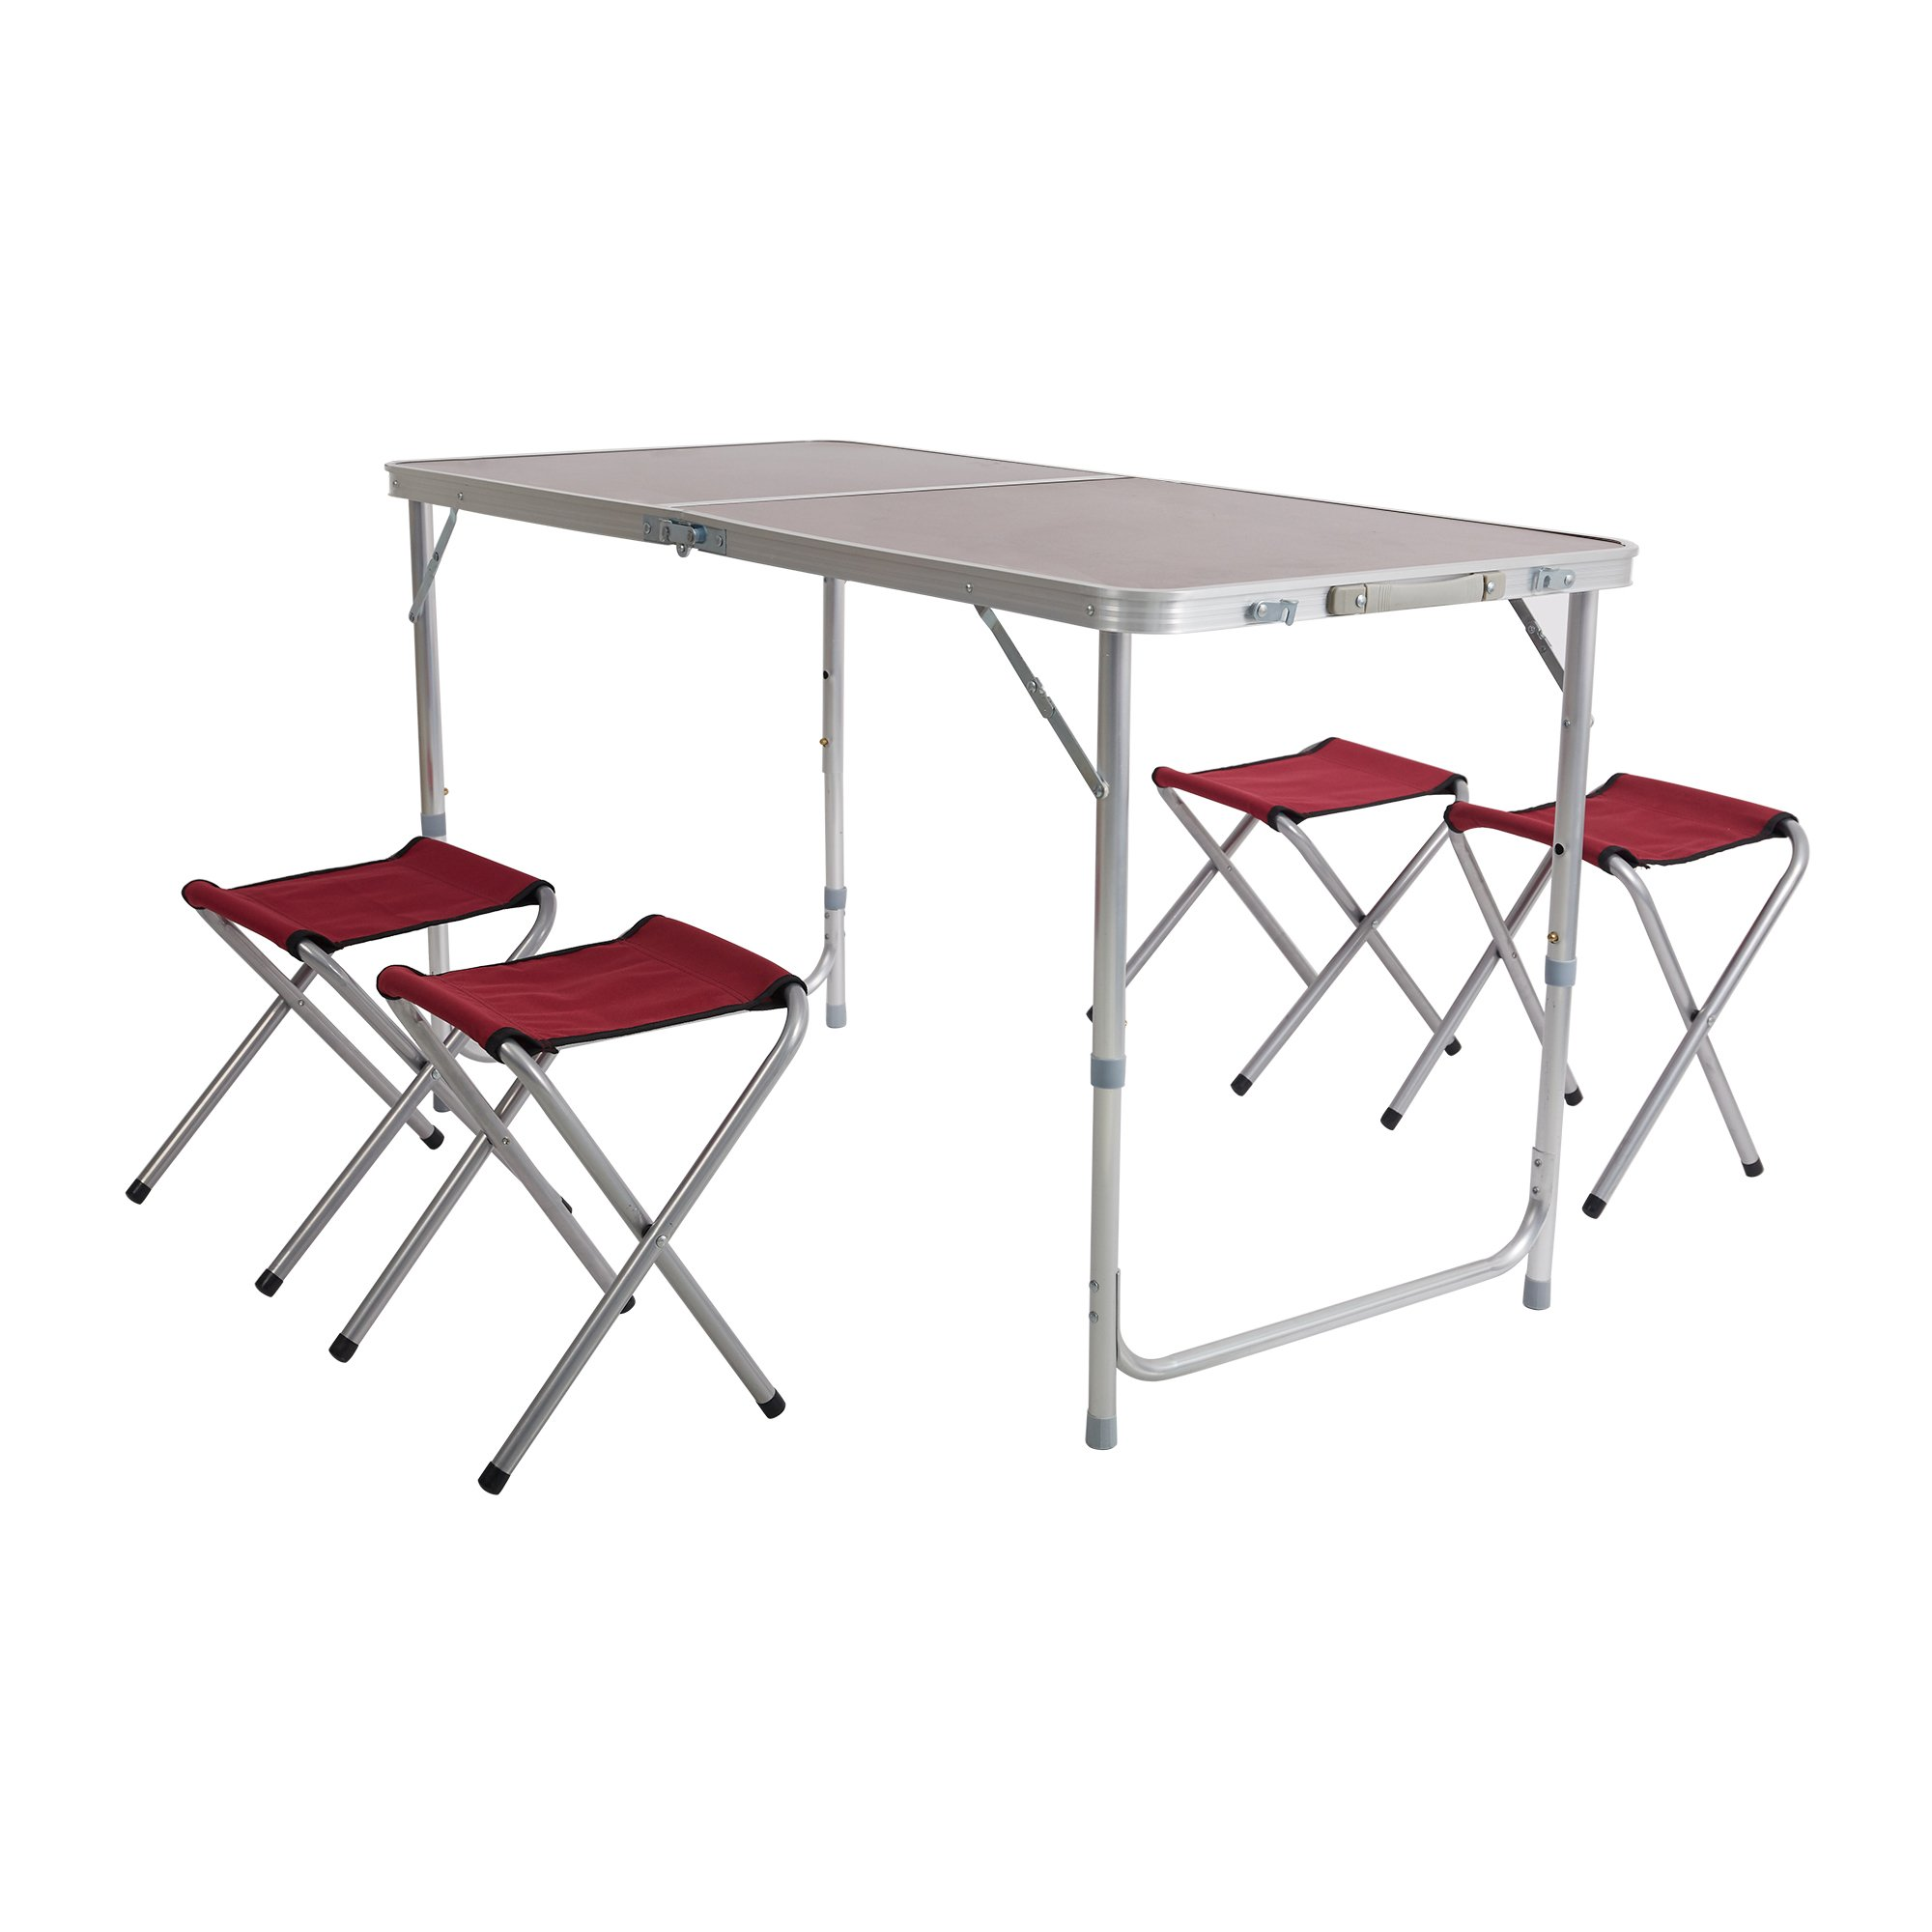 Dporticus Folding Picnic Table with 4 Chairs, Adjustable Aluminum Table for Picnic, Party Dining Indoor/Outdoor Use